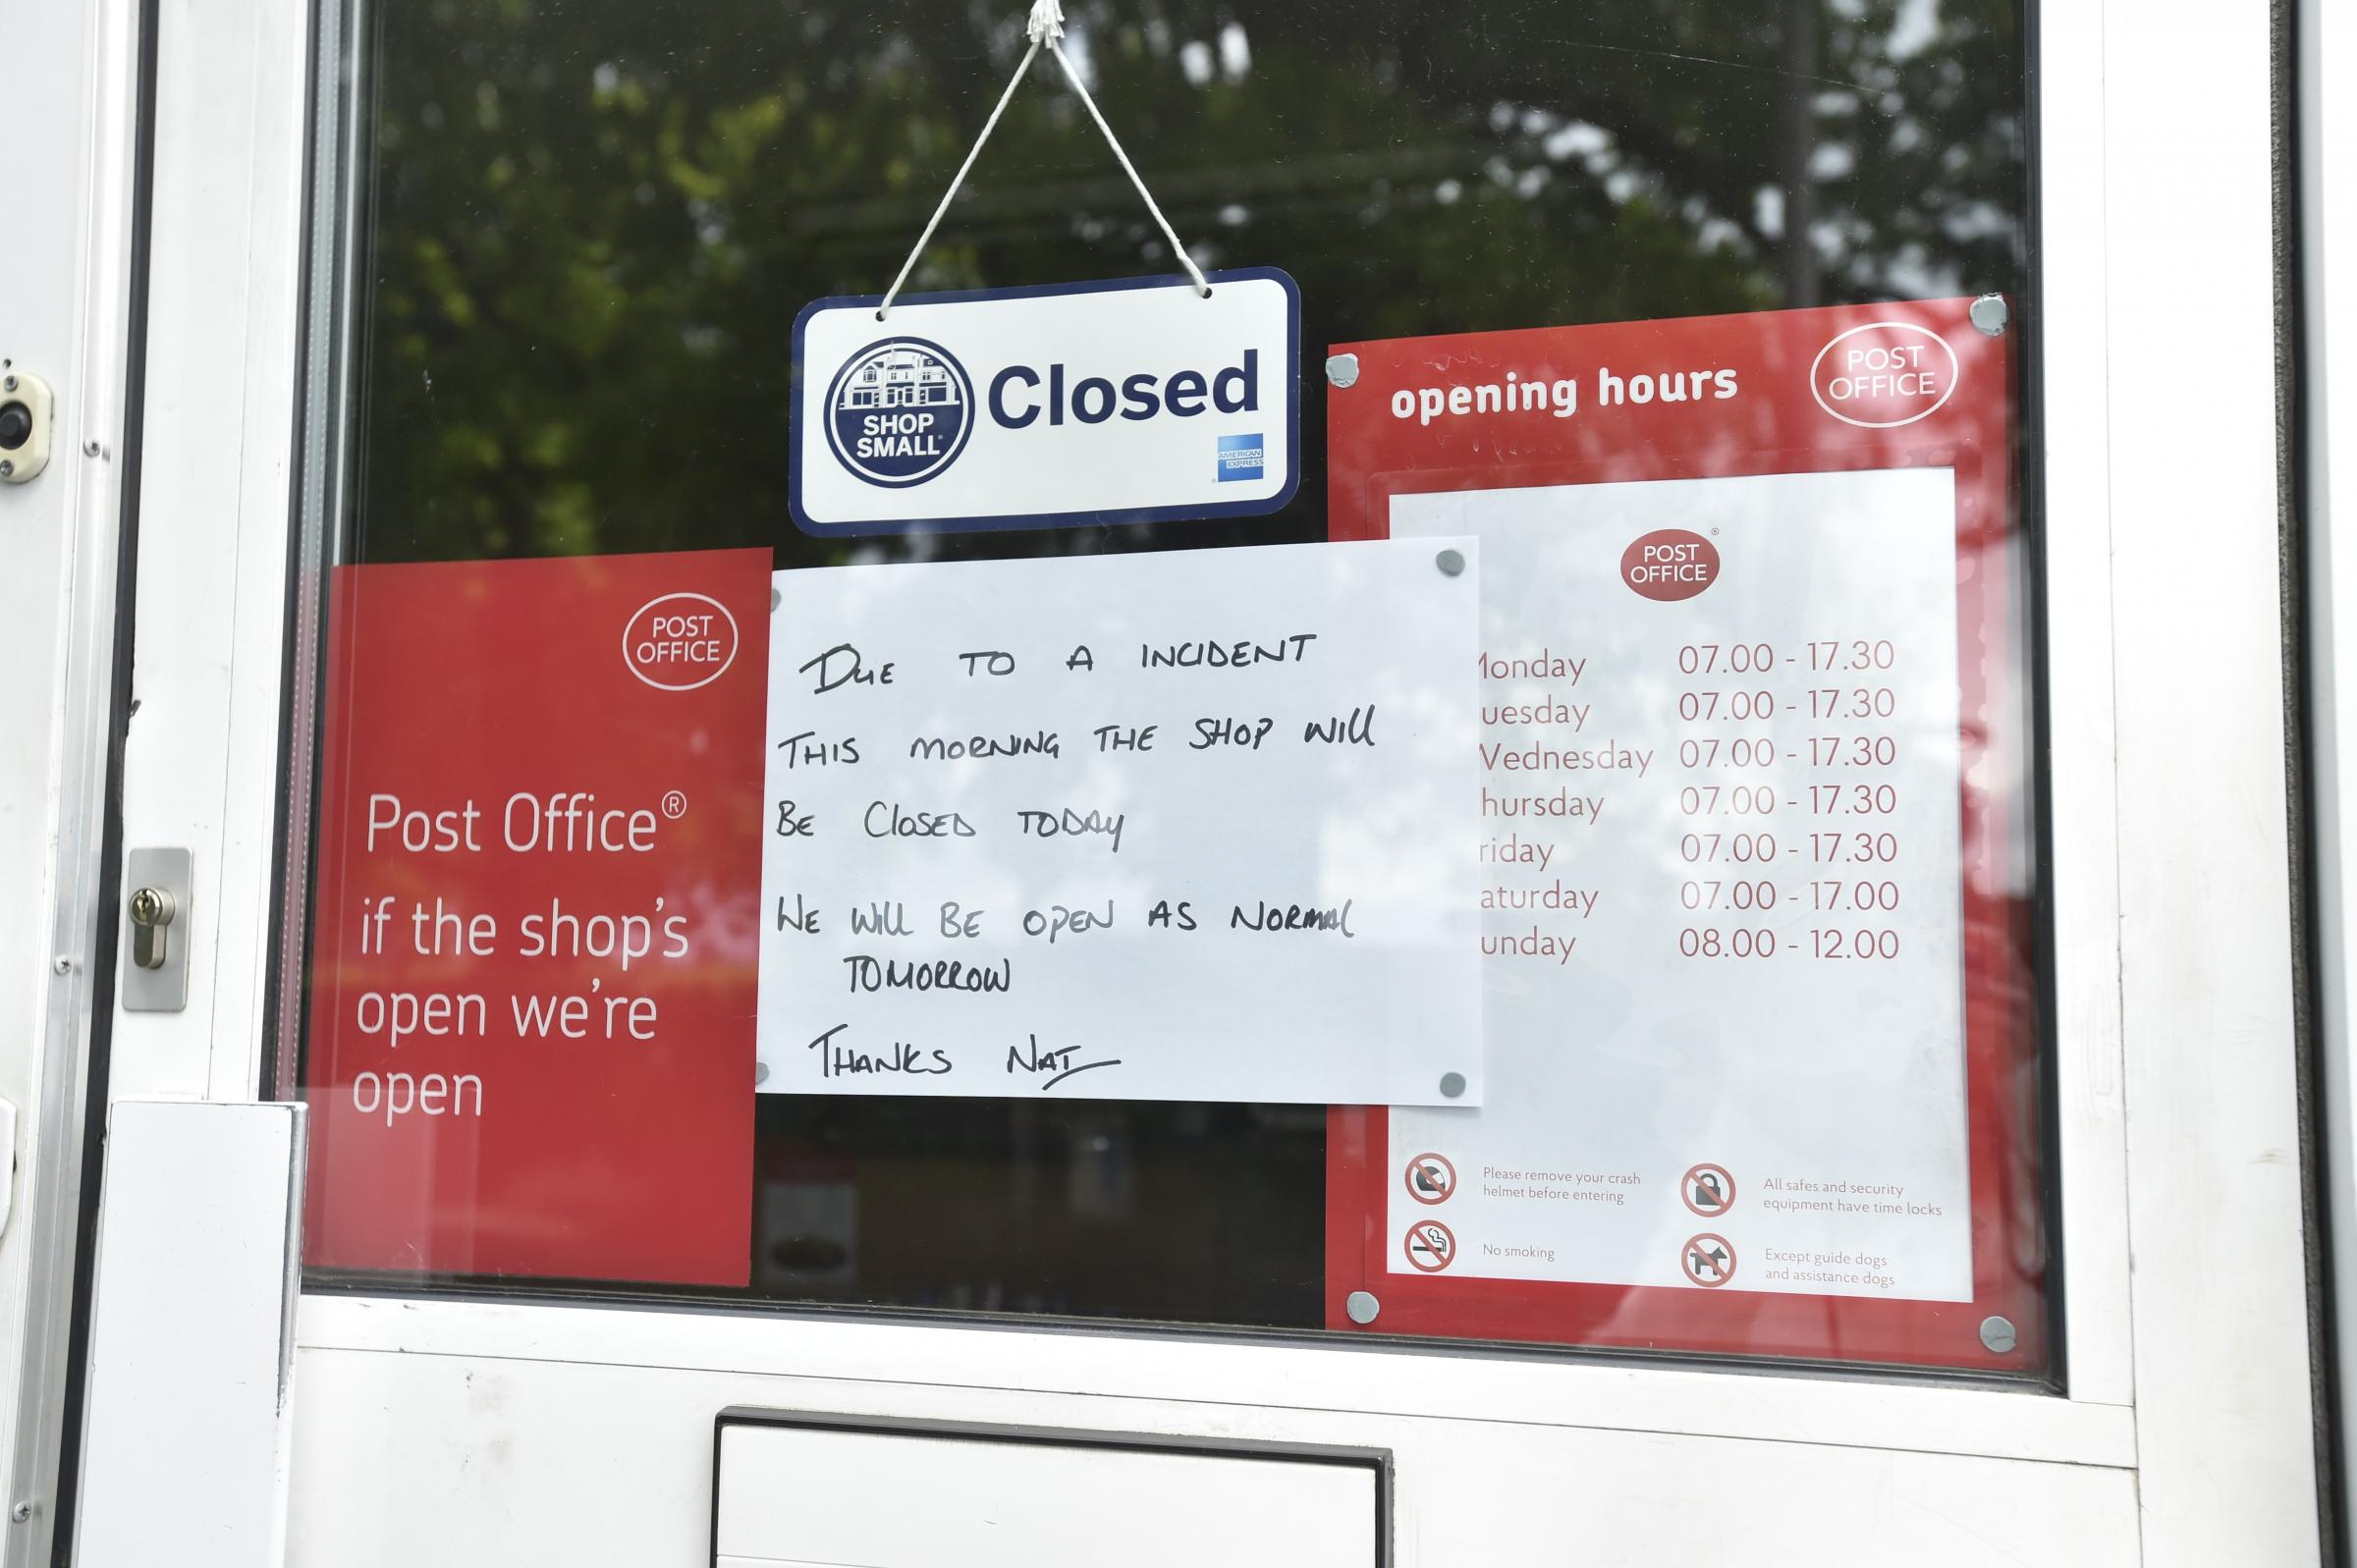 what time do the post office open in the morning